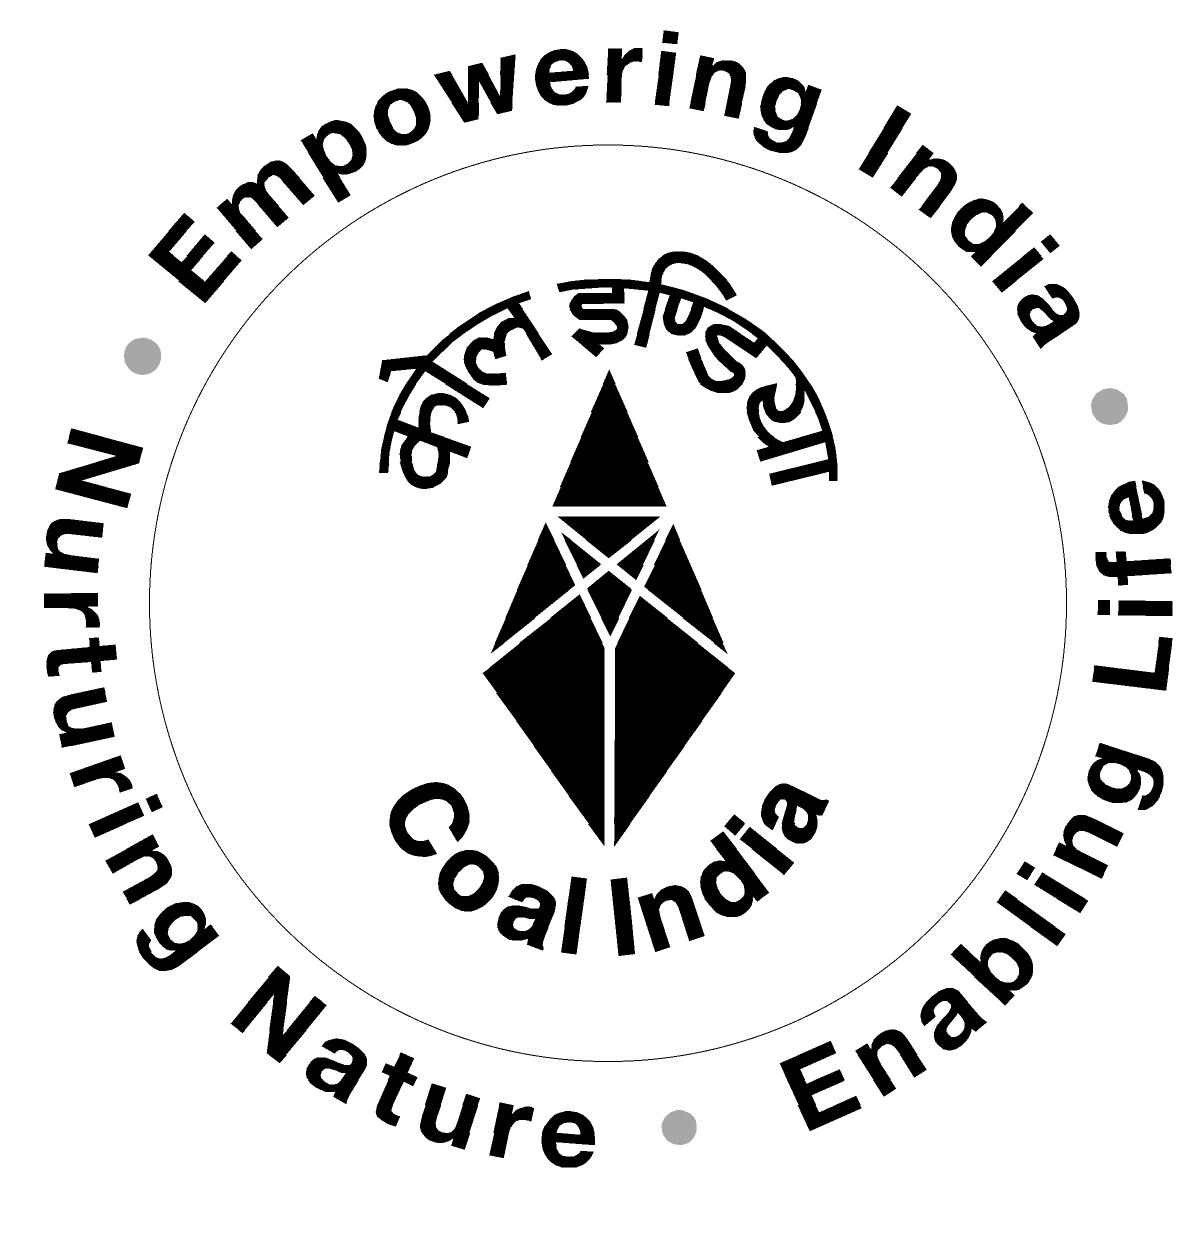 Coal production in india up by 23 to 555 million tonnes coal india biocorpaavc Gallery